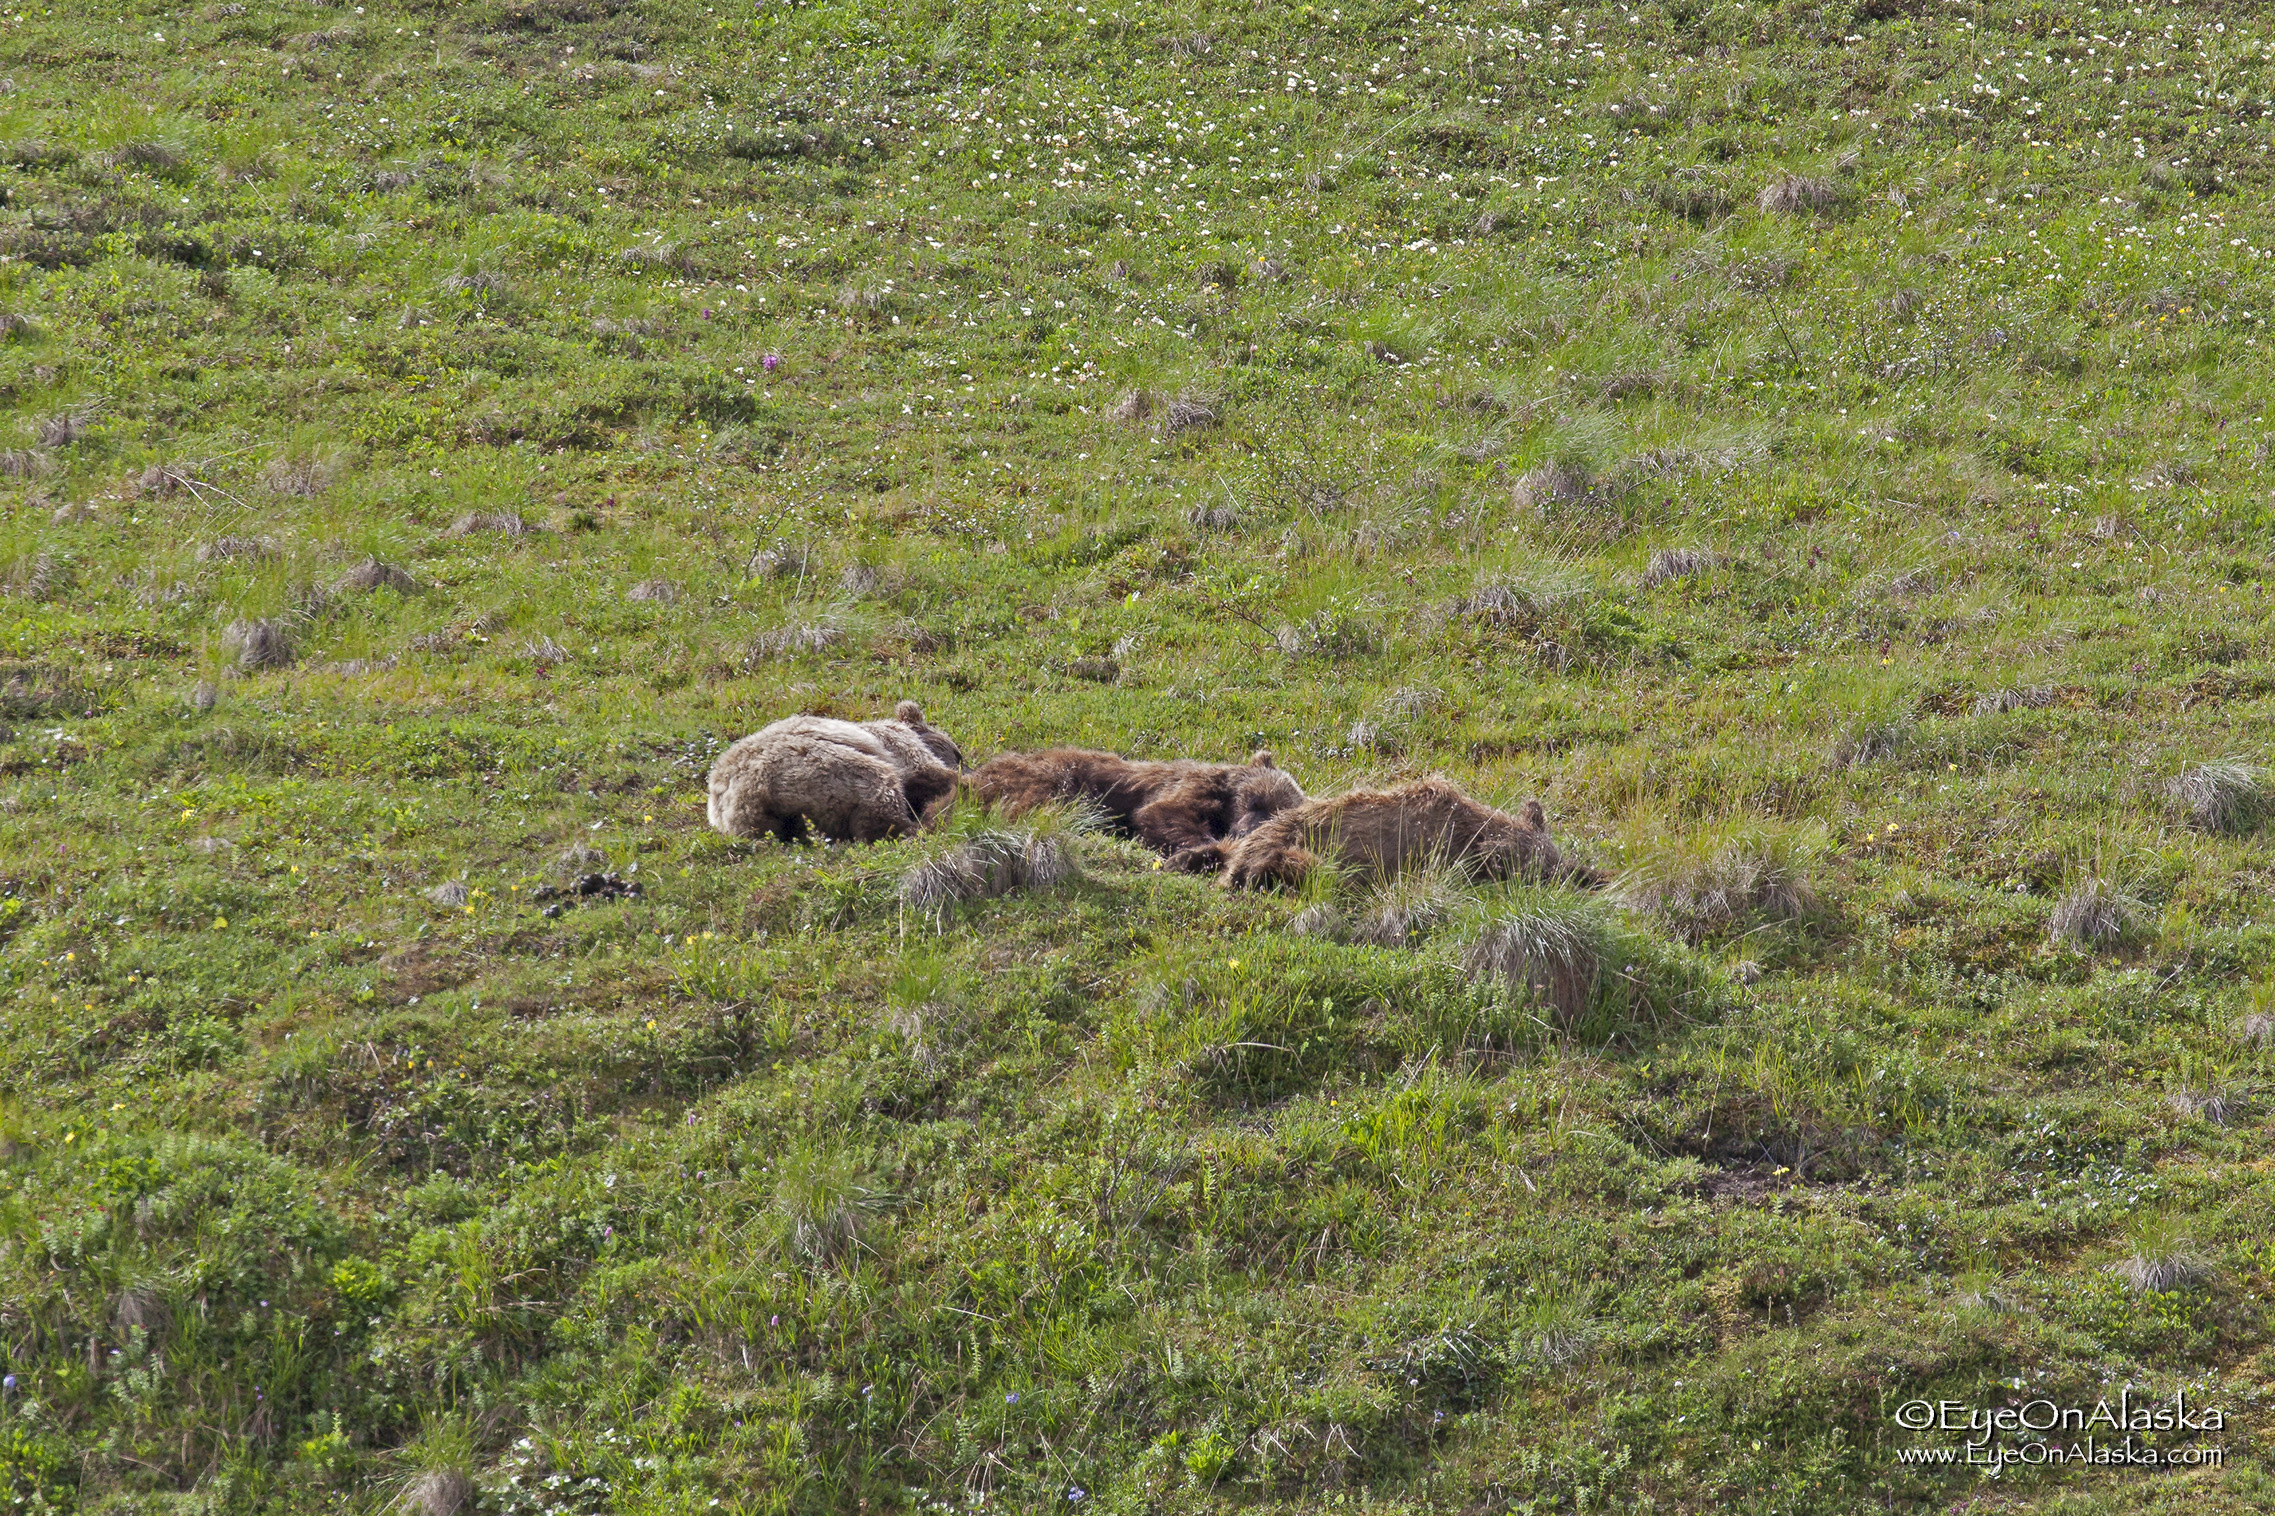 Sunday, July 9th.  After another all-night thunderstorm, the skies cleared and we head back to the top of Sable Pass.  We couldn't get off the bus right at the top because of this.  A sow and her two cubs from last year were sleeping next to the road.